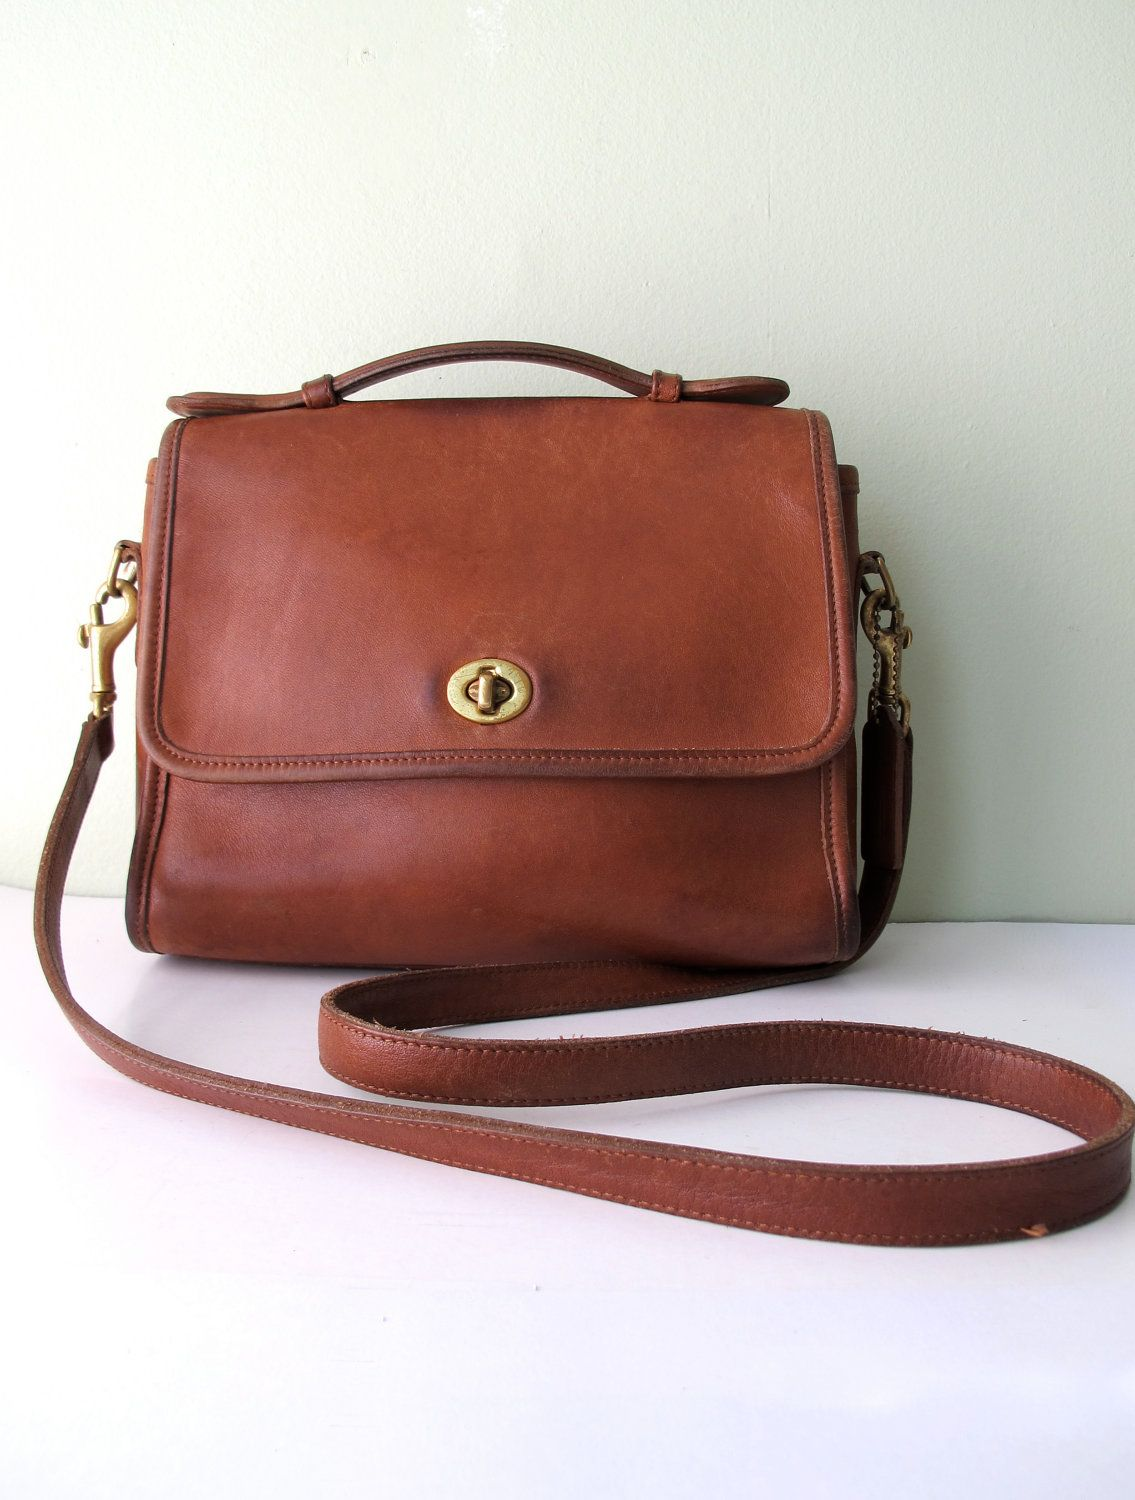 Pursue handbag happiness while you browse our huge selection of bags from cute totes to trendy crossbody bags, there's something for everyone. We even have hiking bags from The North Face, backpacks for students, and laptop bags for the business minded.